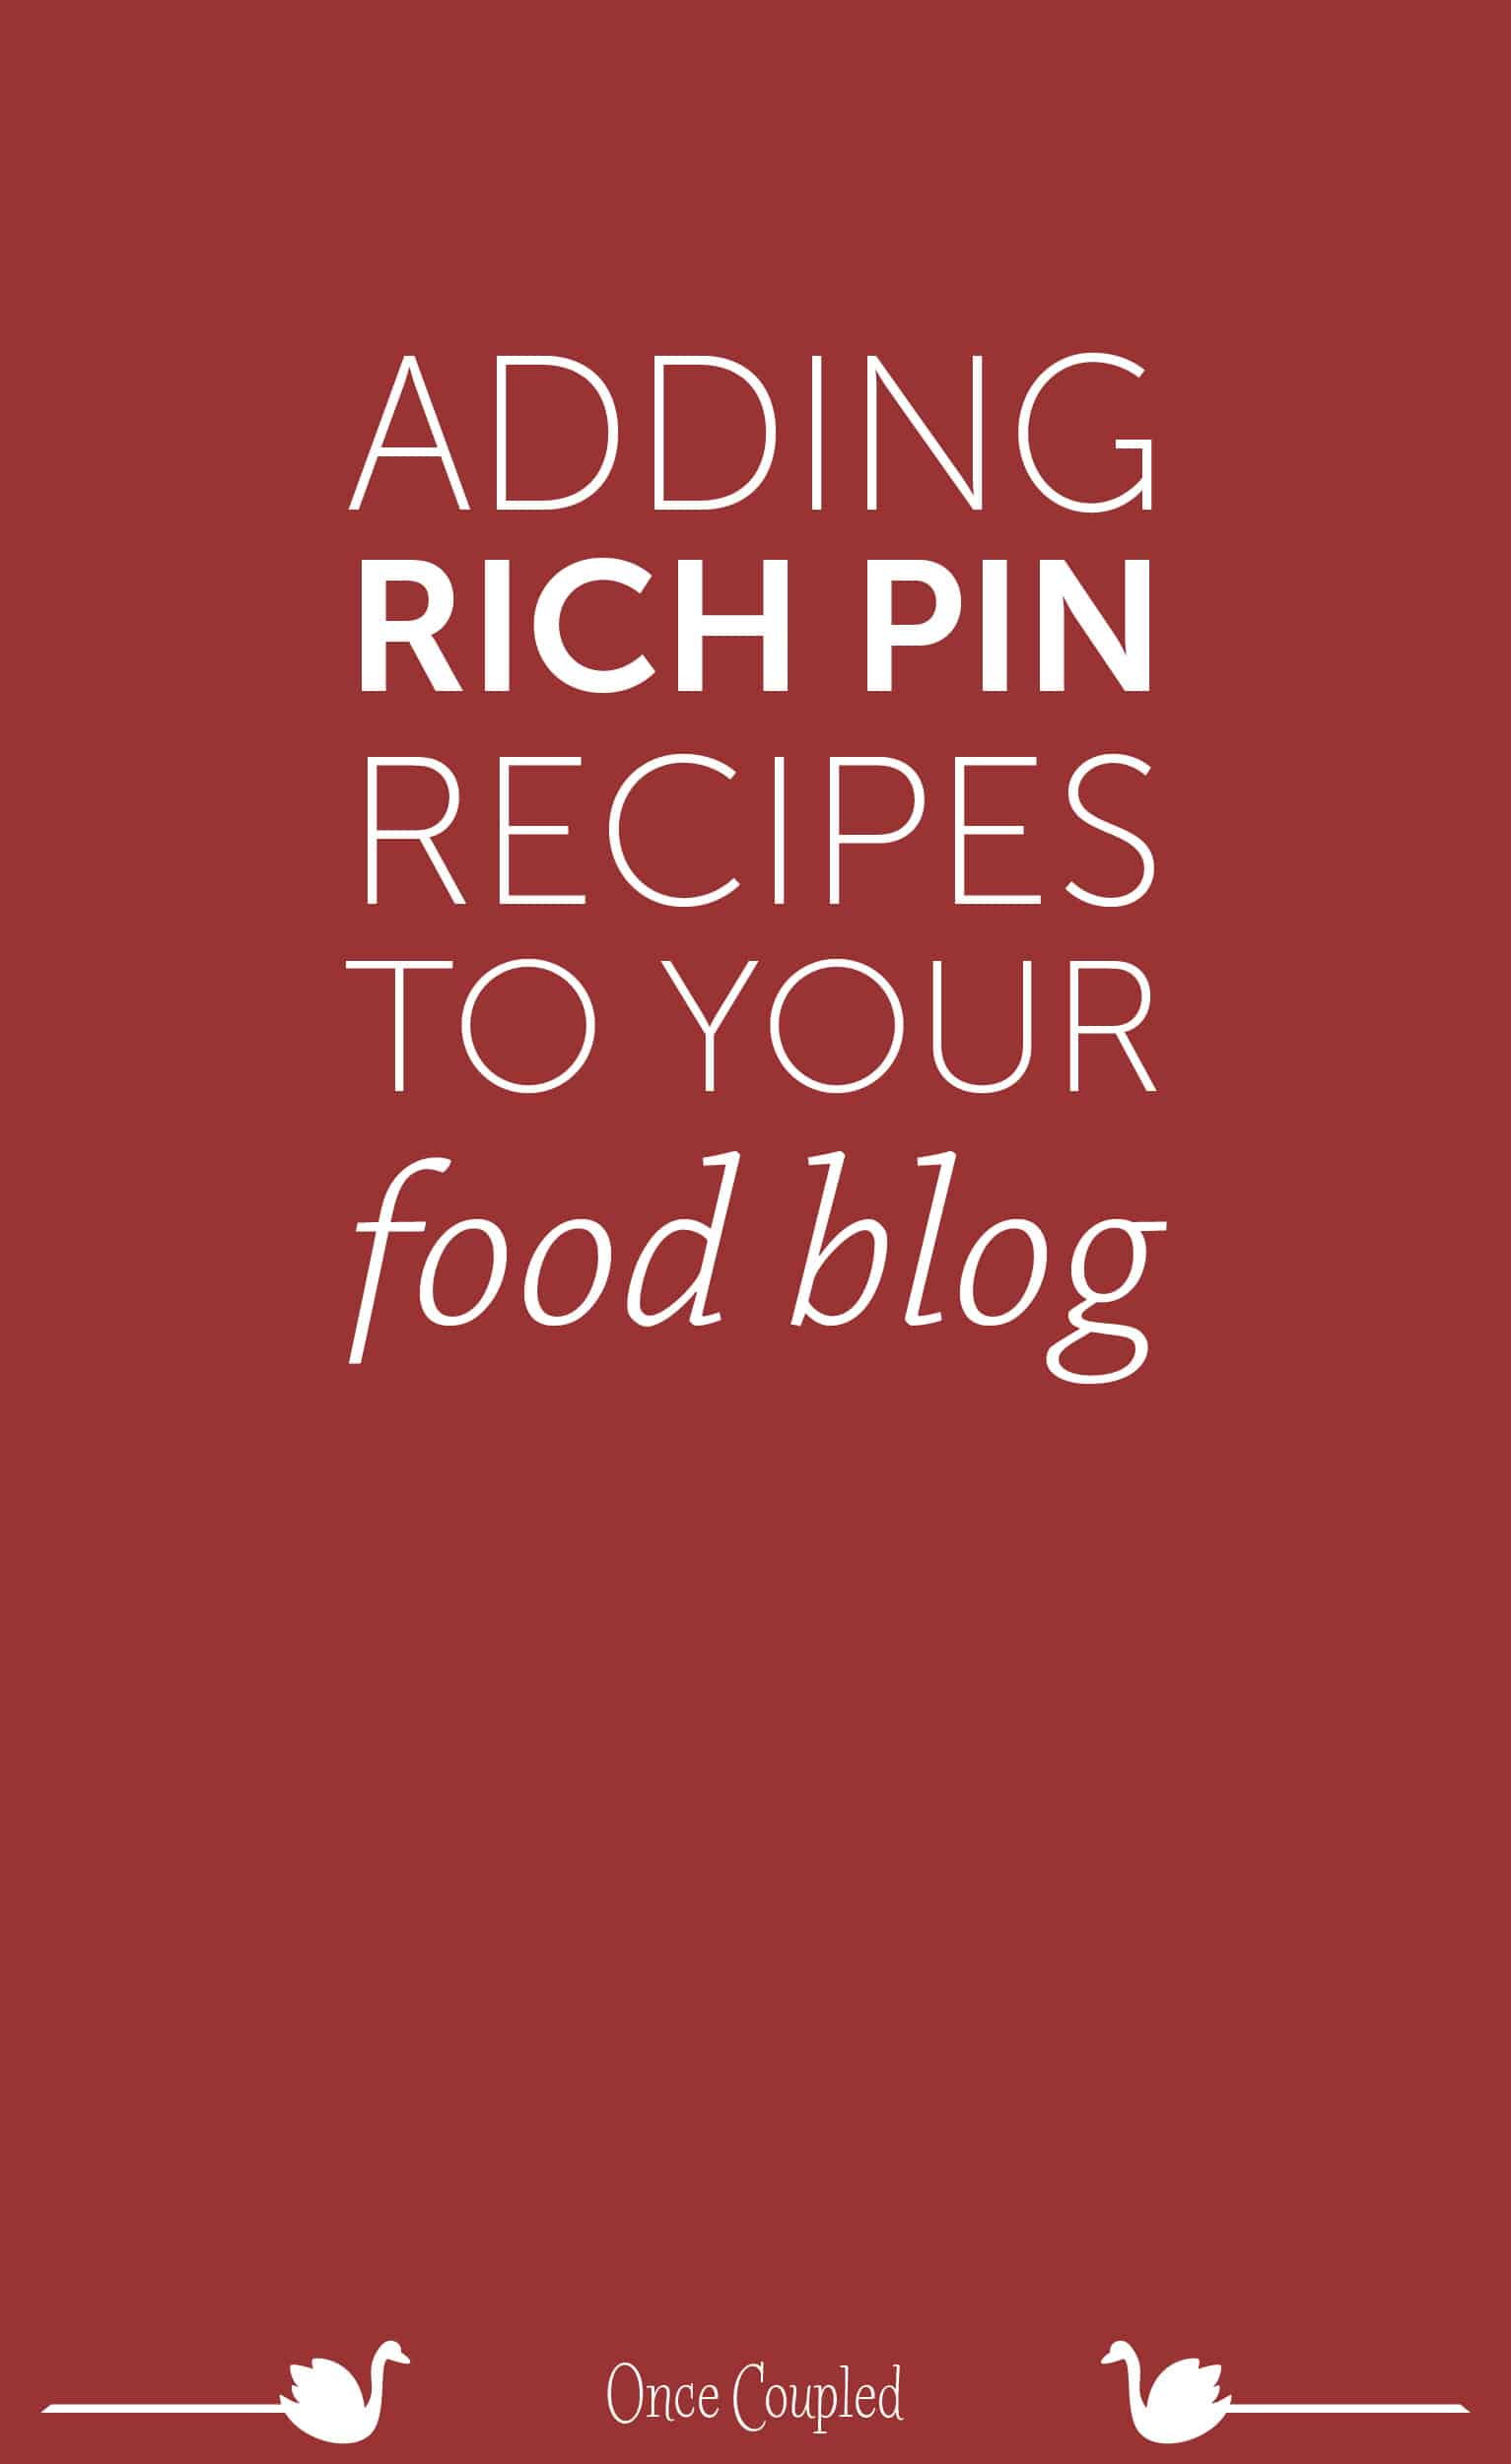 Adding Rich Recipe Pins to Your Food Blog